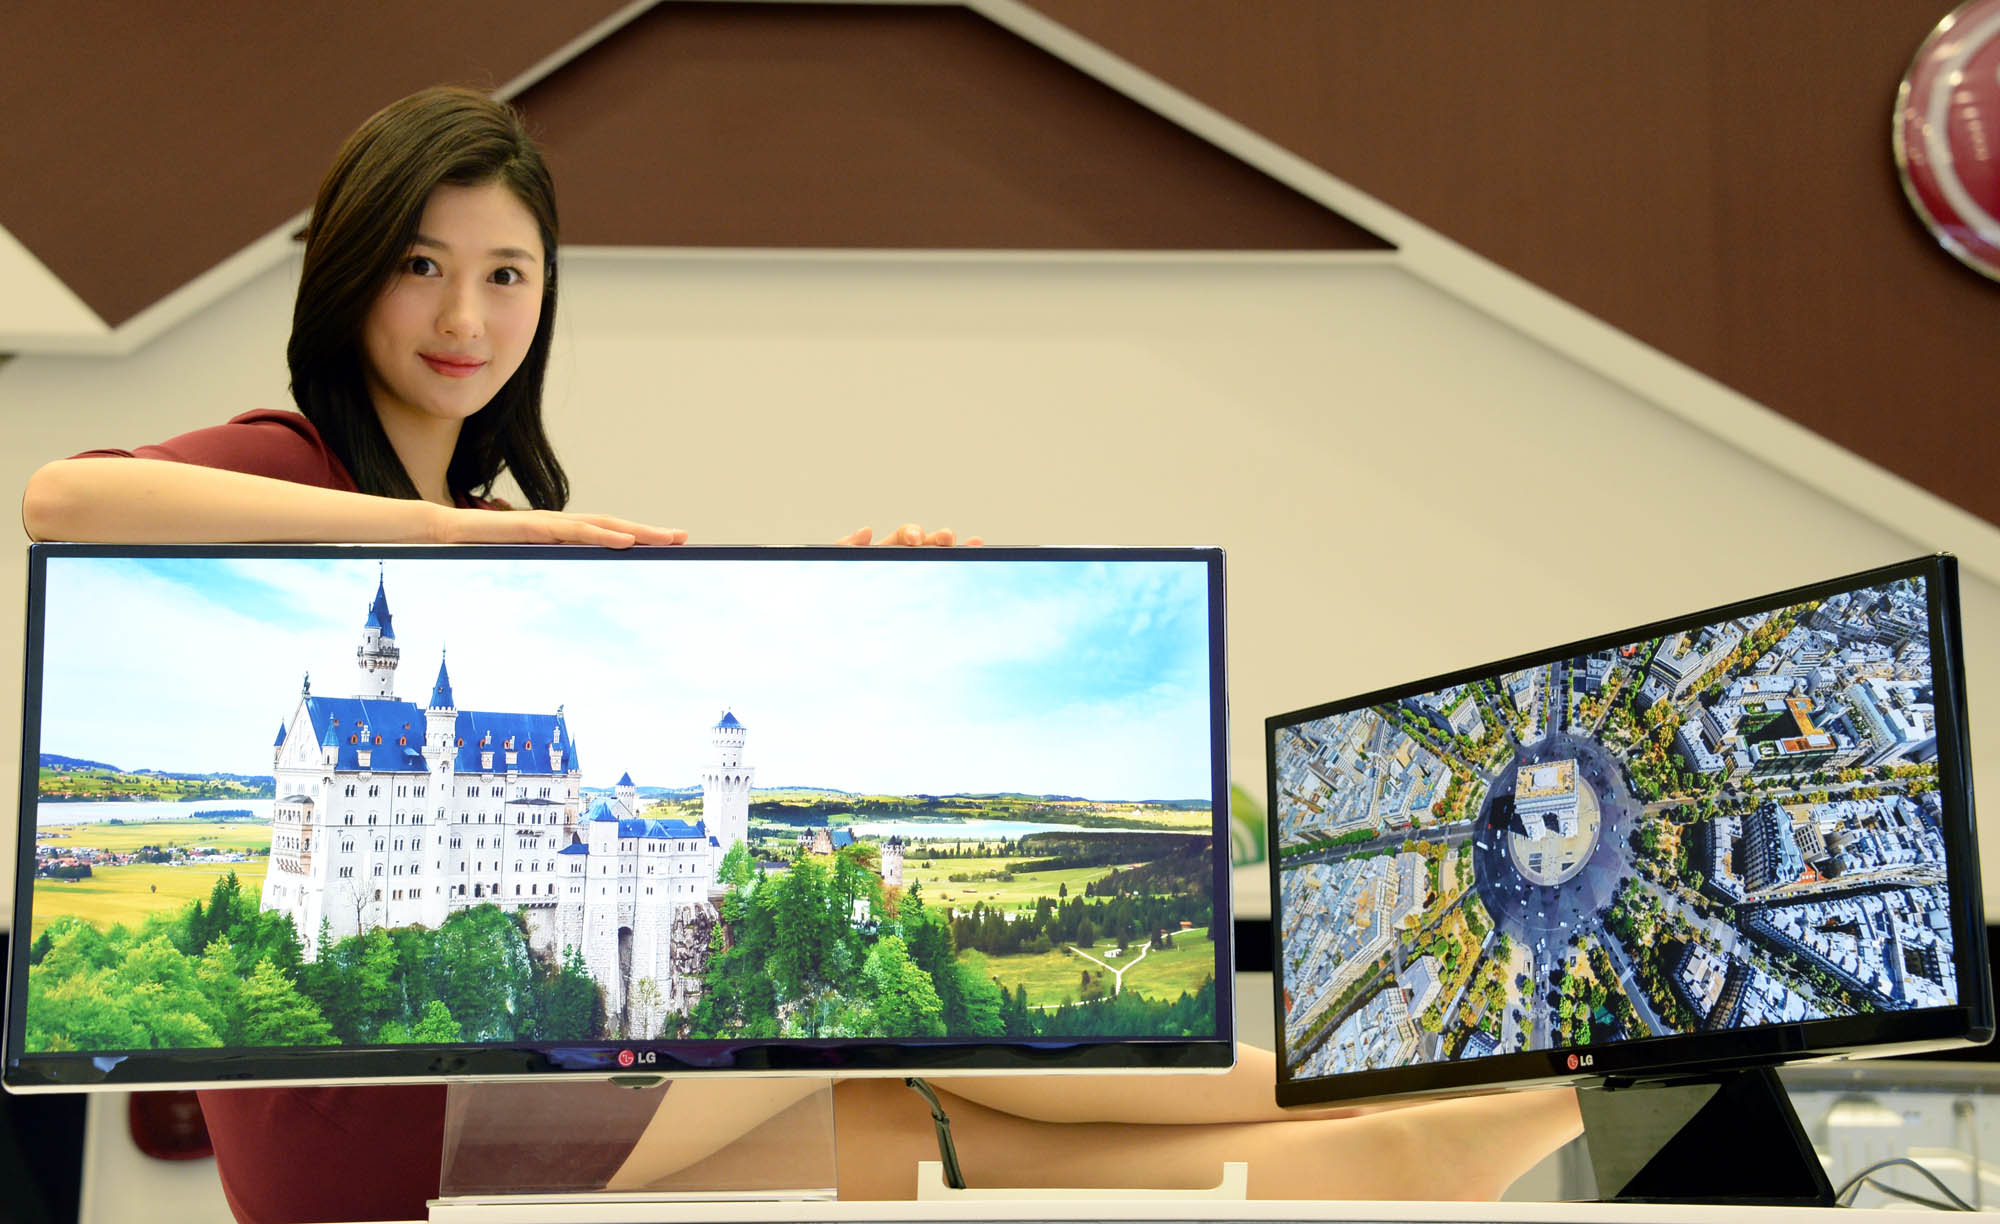 A model presenting the 34-inch and 29-inch IPS 21:9 UltraWide monitors while leaning on the 34-inch model